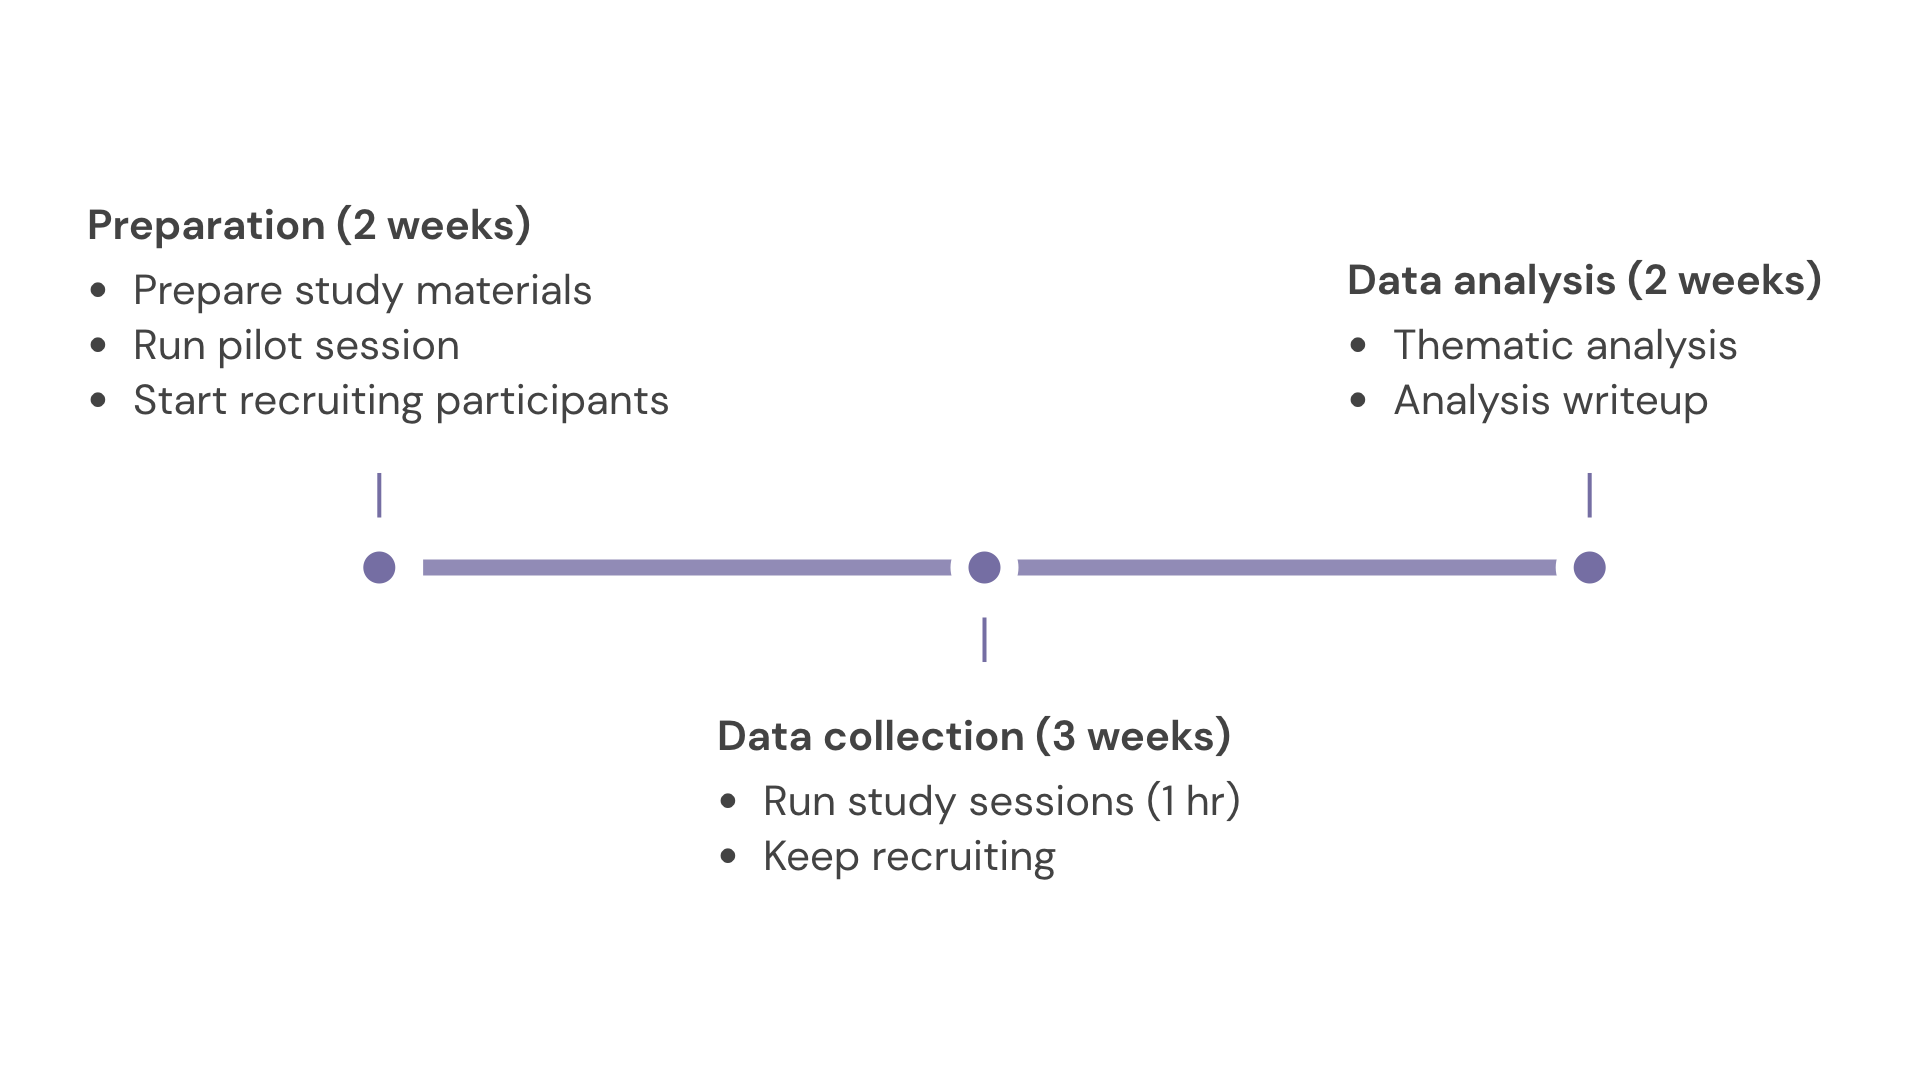 A visual representation of the timeline of the project, with different phases for preparation (2 weeks), data collection (3 weeks), and data analysis (2 weeks)